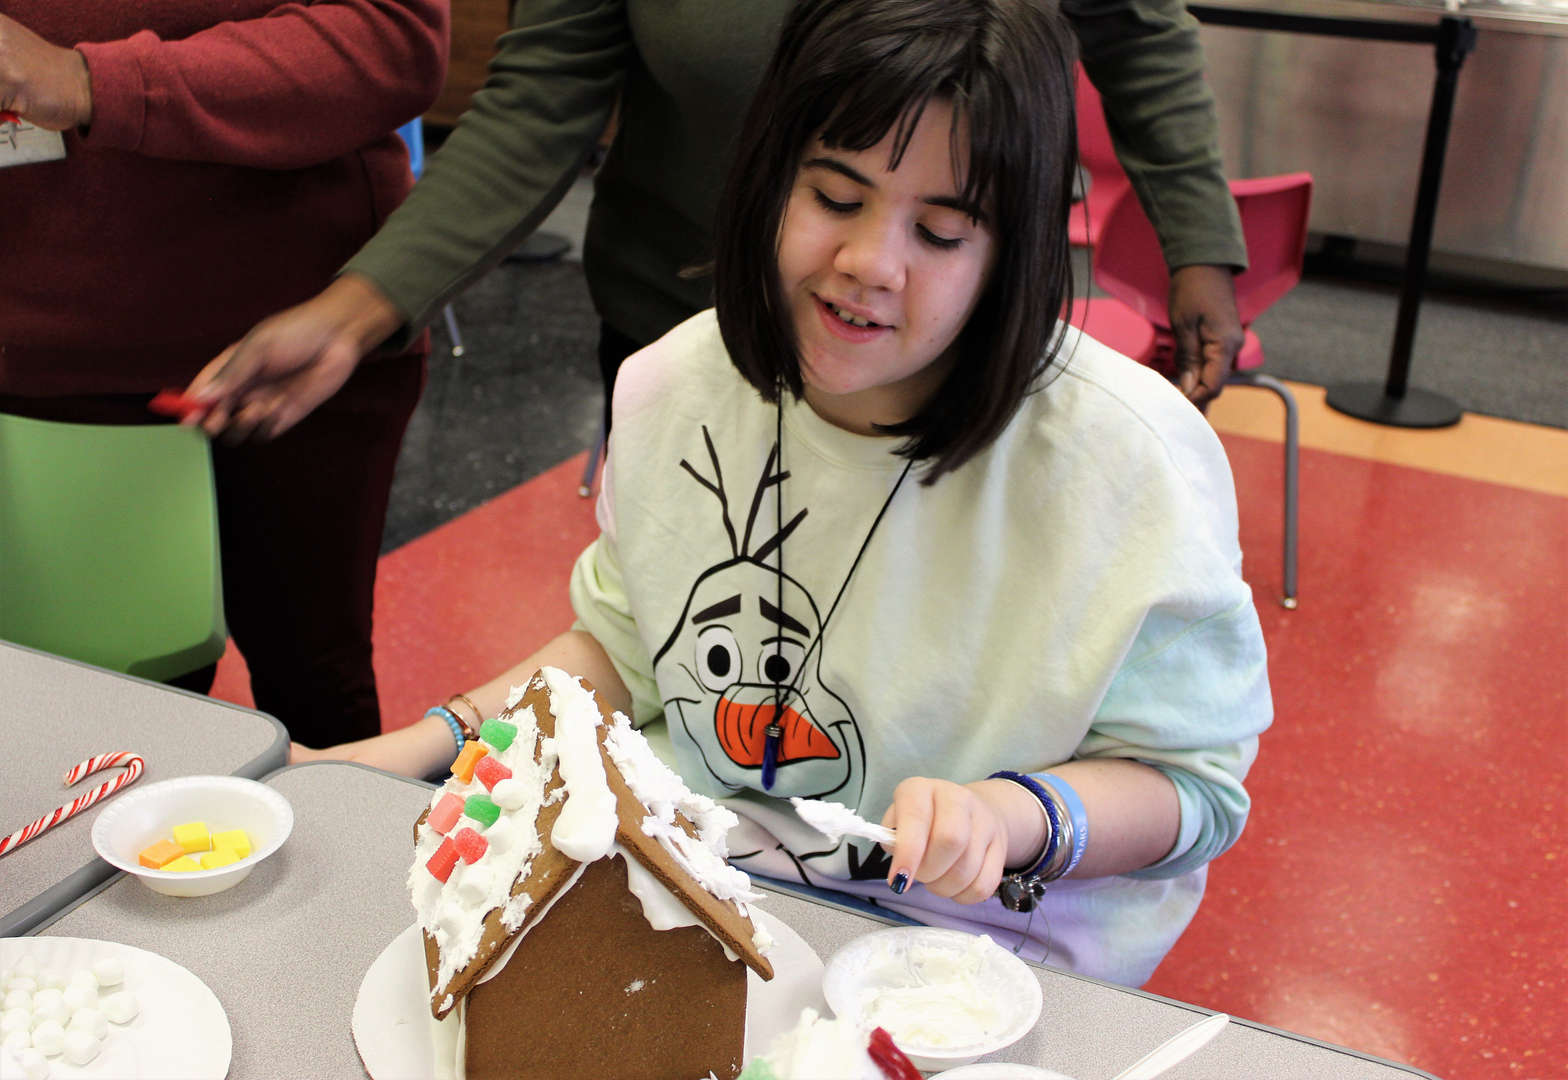 A female student decorates her gingerbread house with candy.